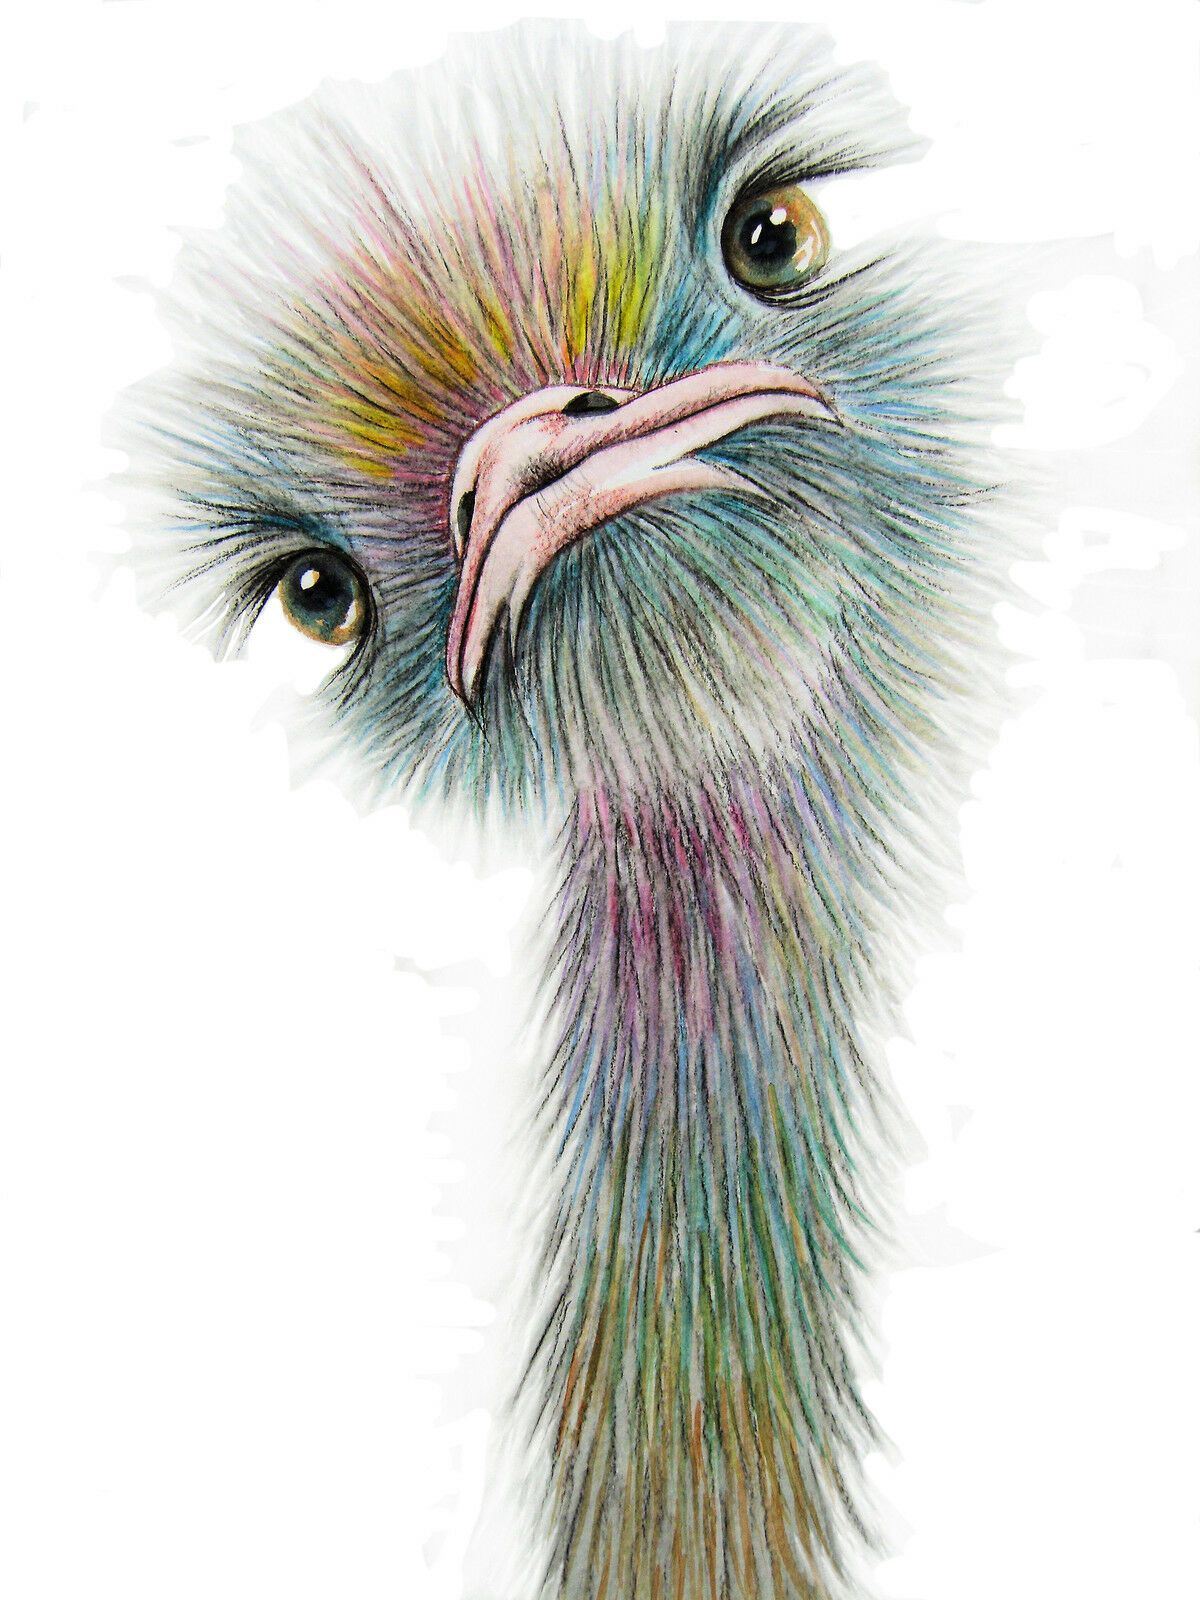 *OSTRICH 2* Signed Print Available in 4 Sizes From A4 to A1 by Maria Moss  | eBay